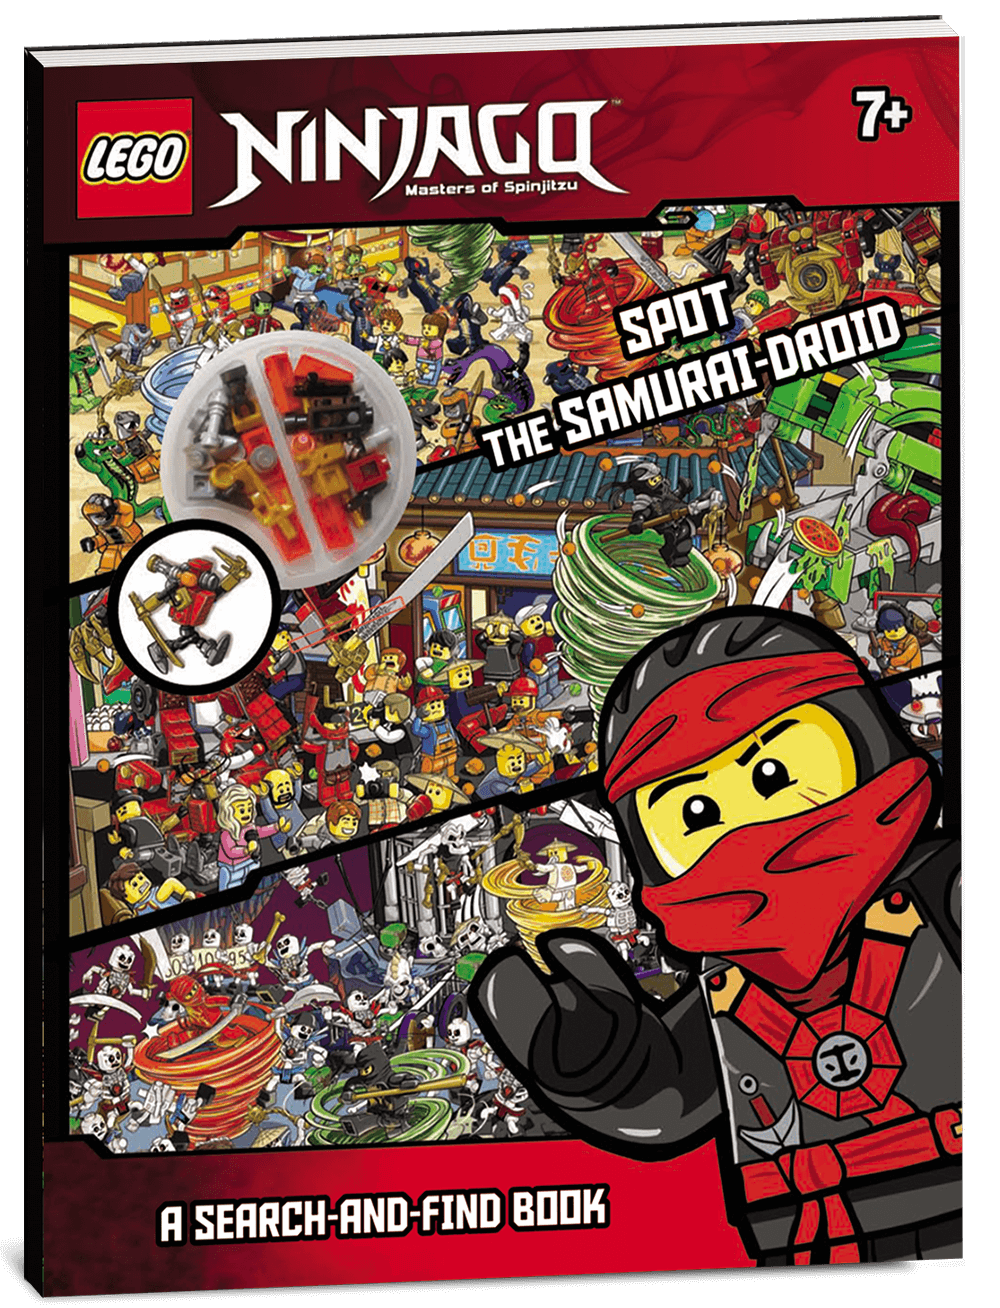 Lego Chima Sets 2015 Book Covers